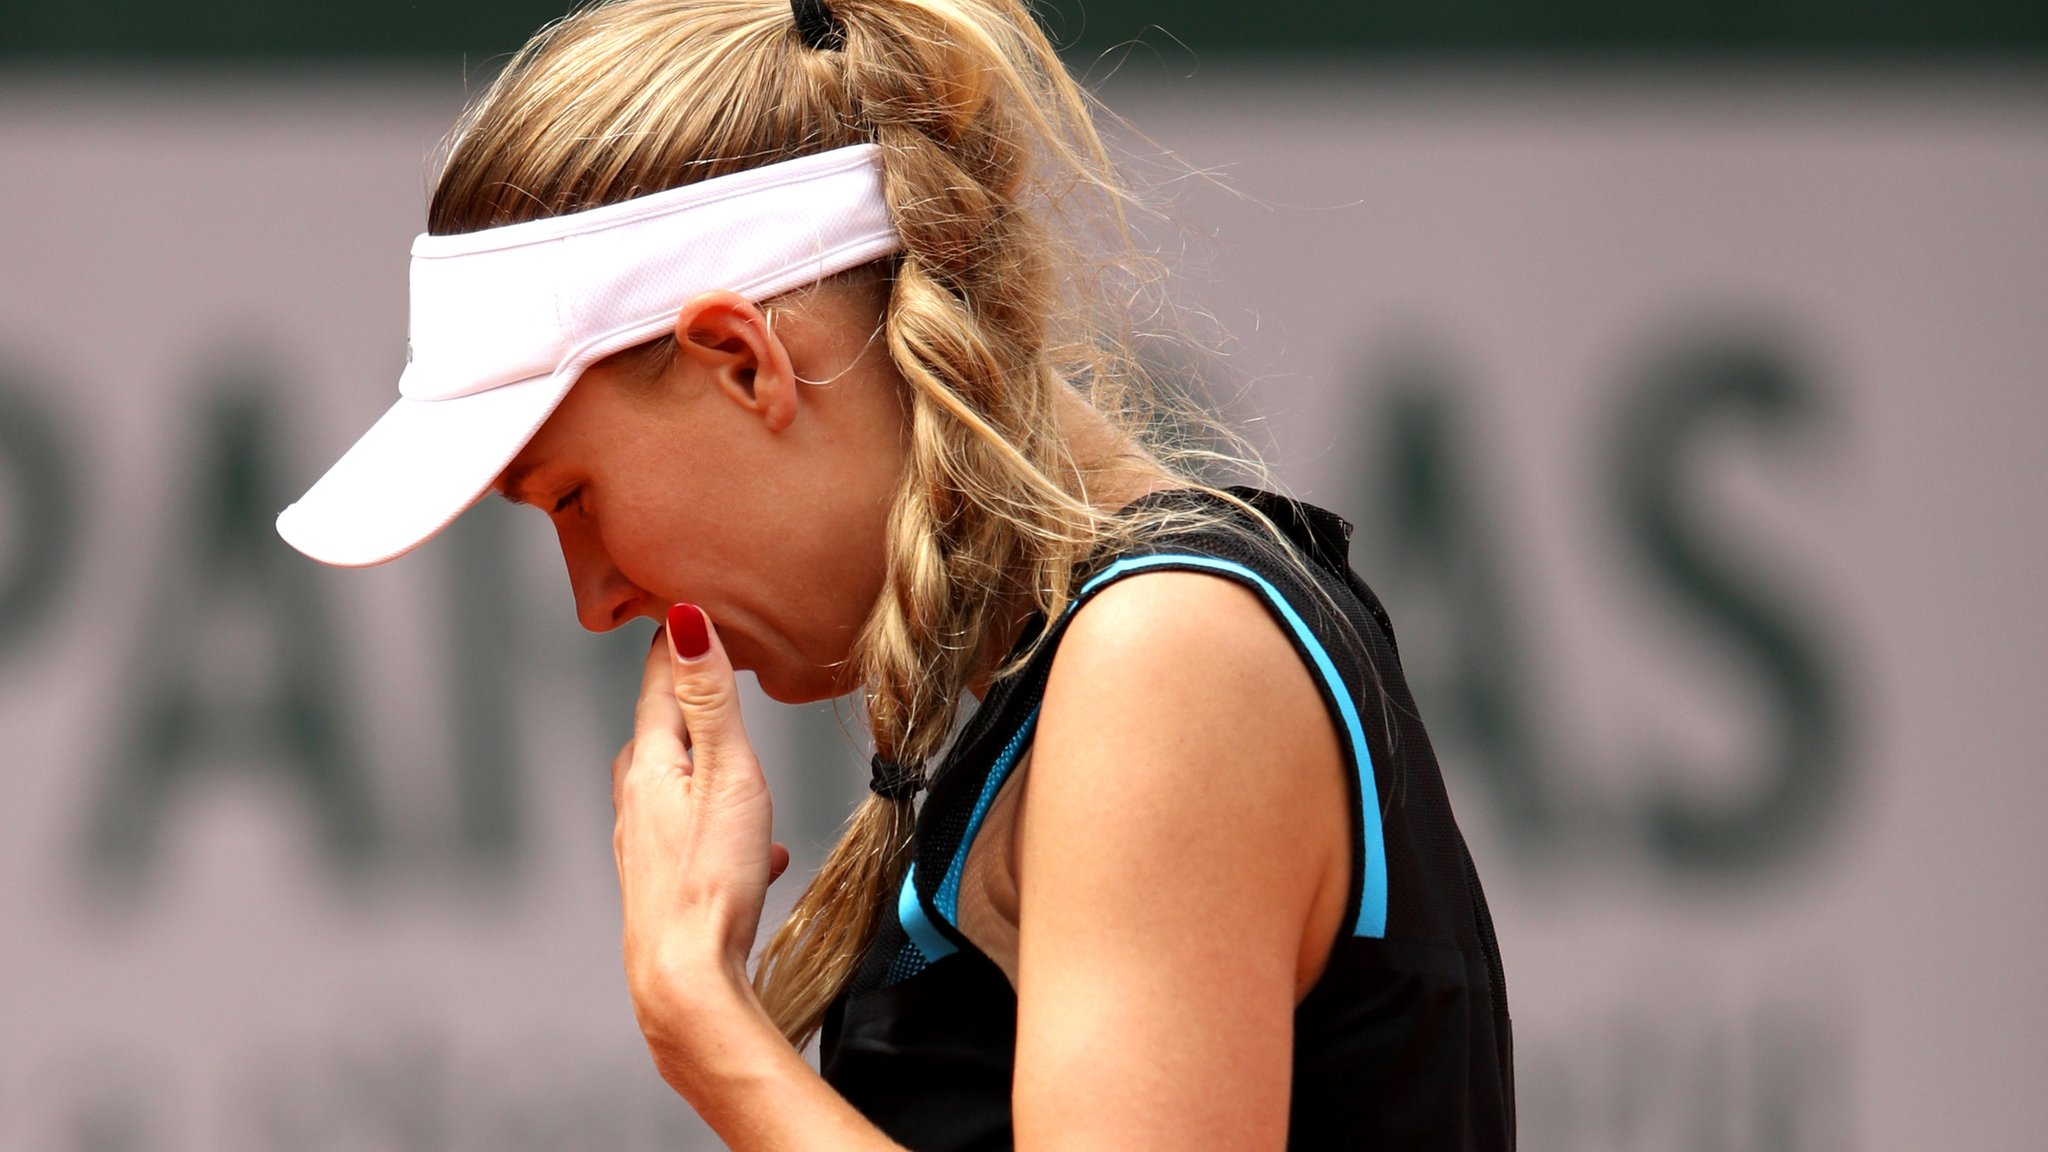 'I ran out of steam' - Wozniacki after shock first-round loss in Paris